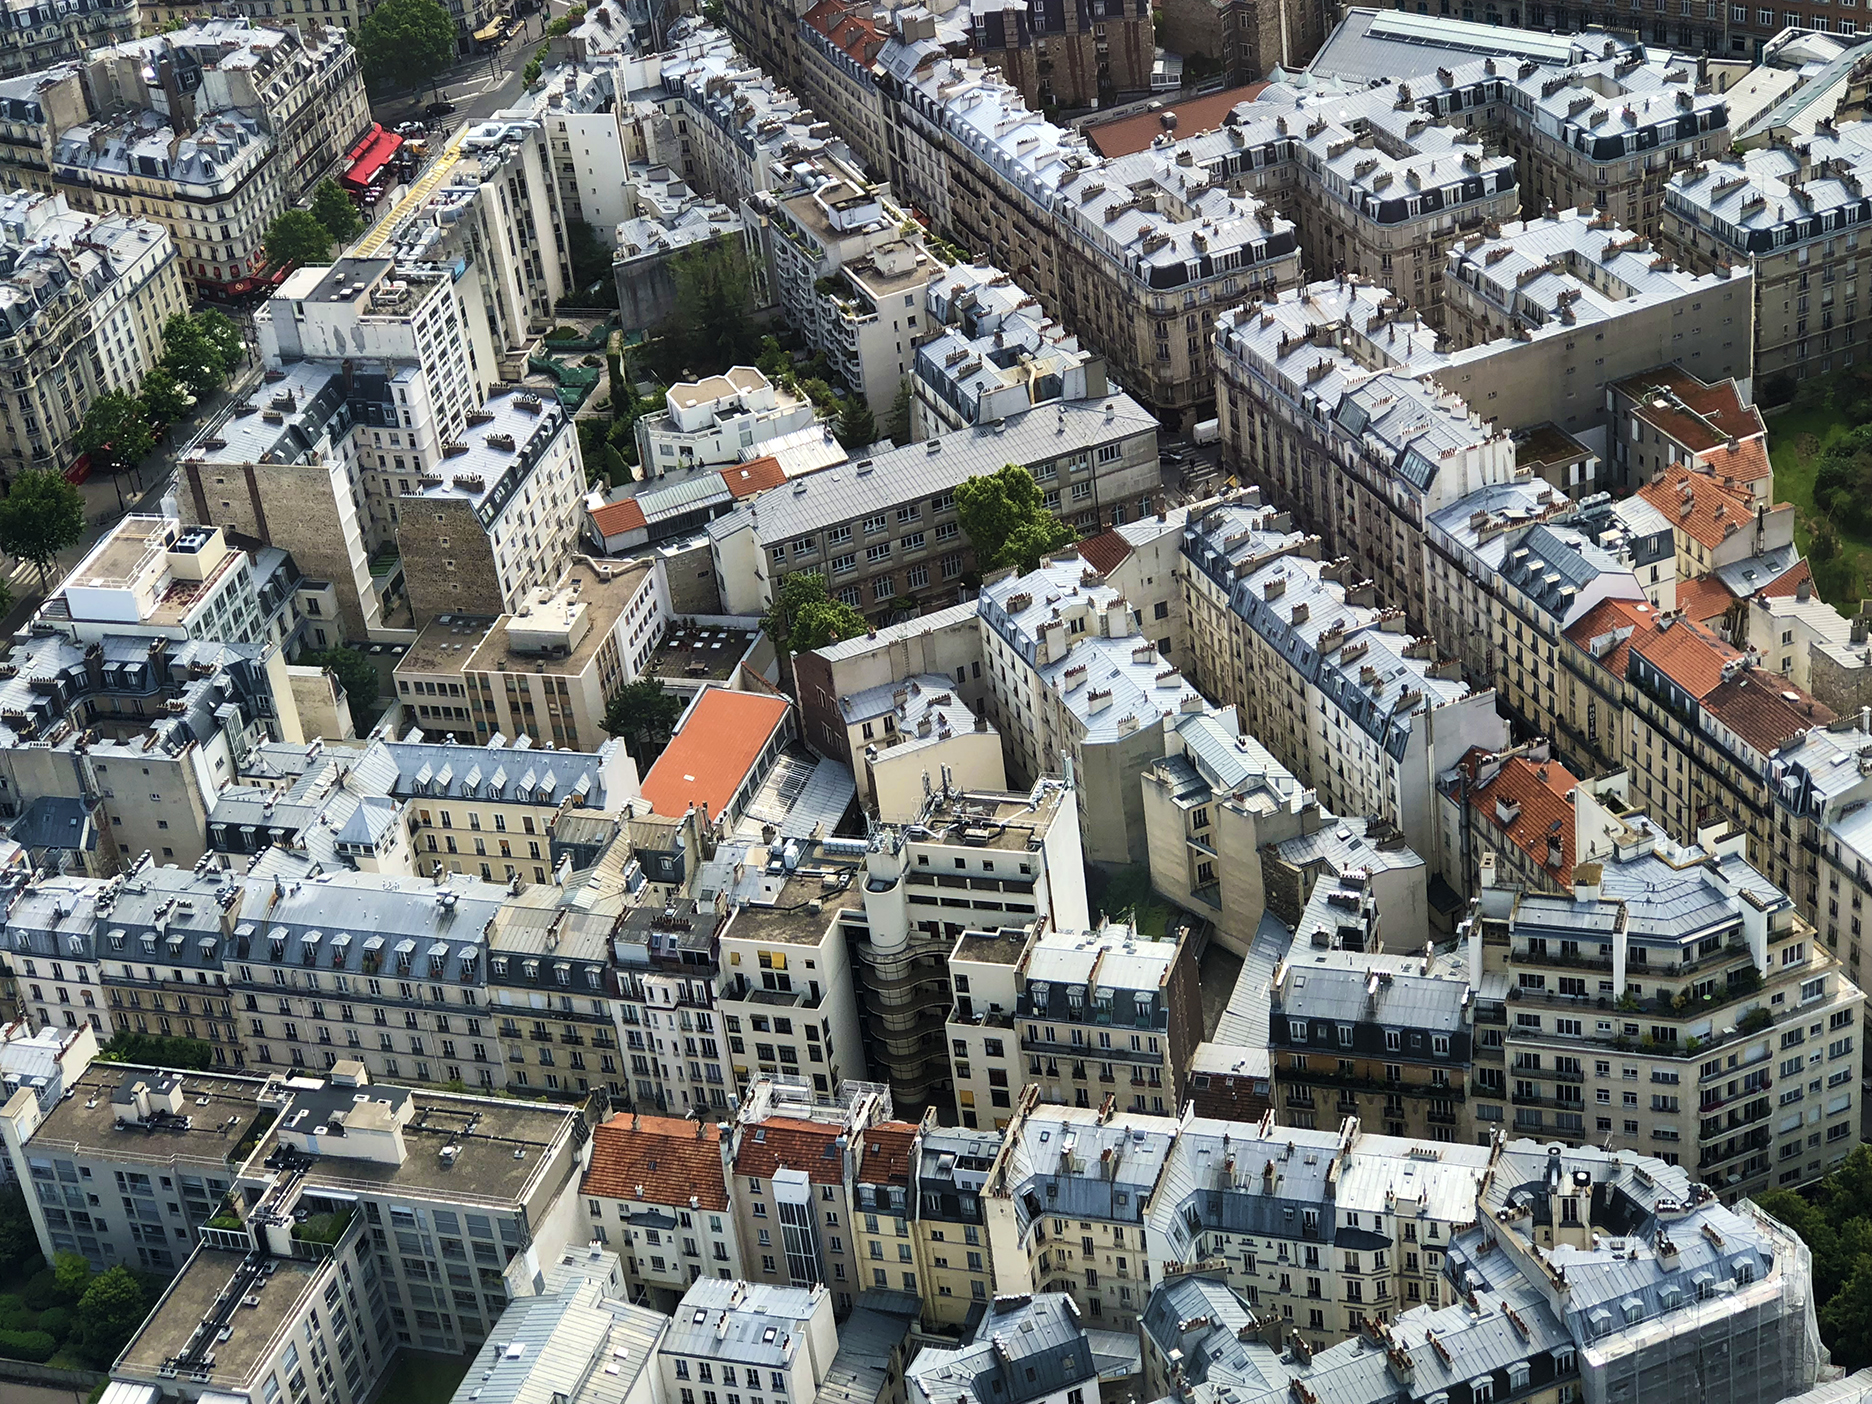 Rooftops from the 56th floor. La Rotonde restaurant (red awning) at top left.